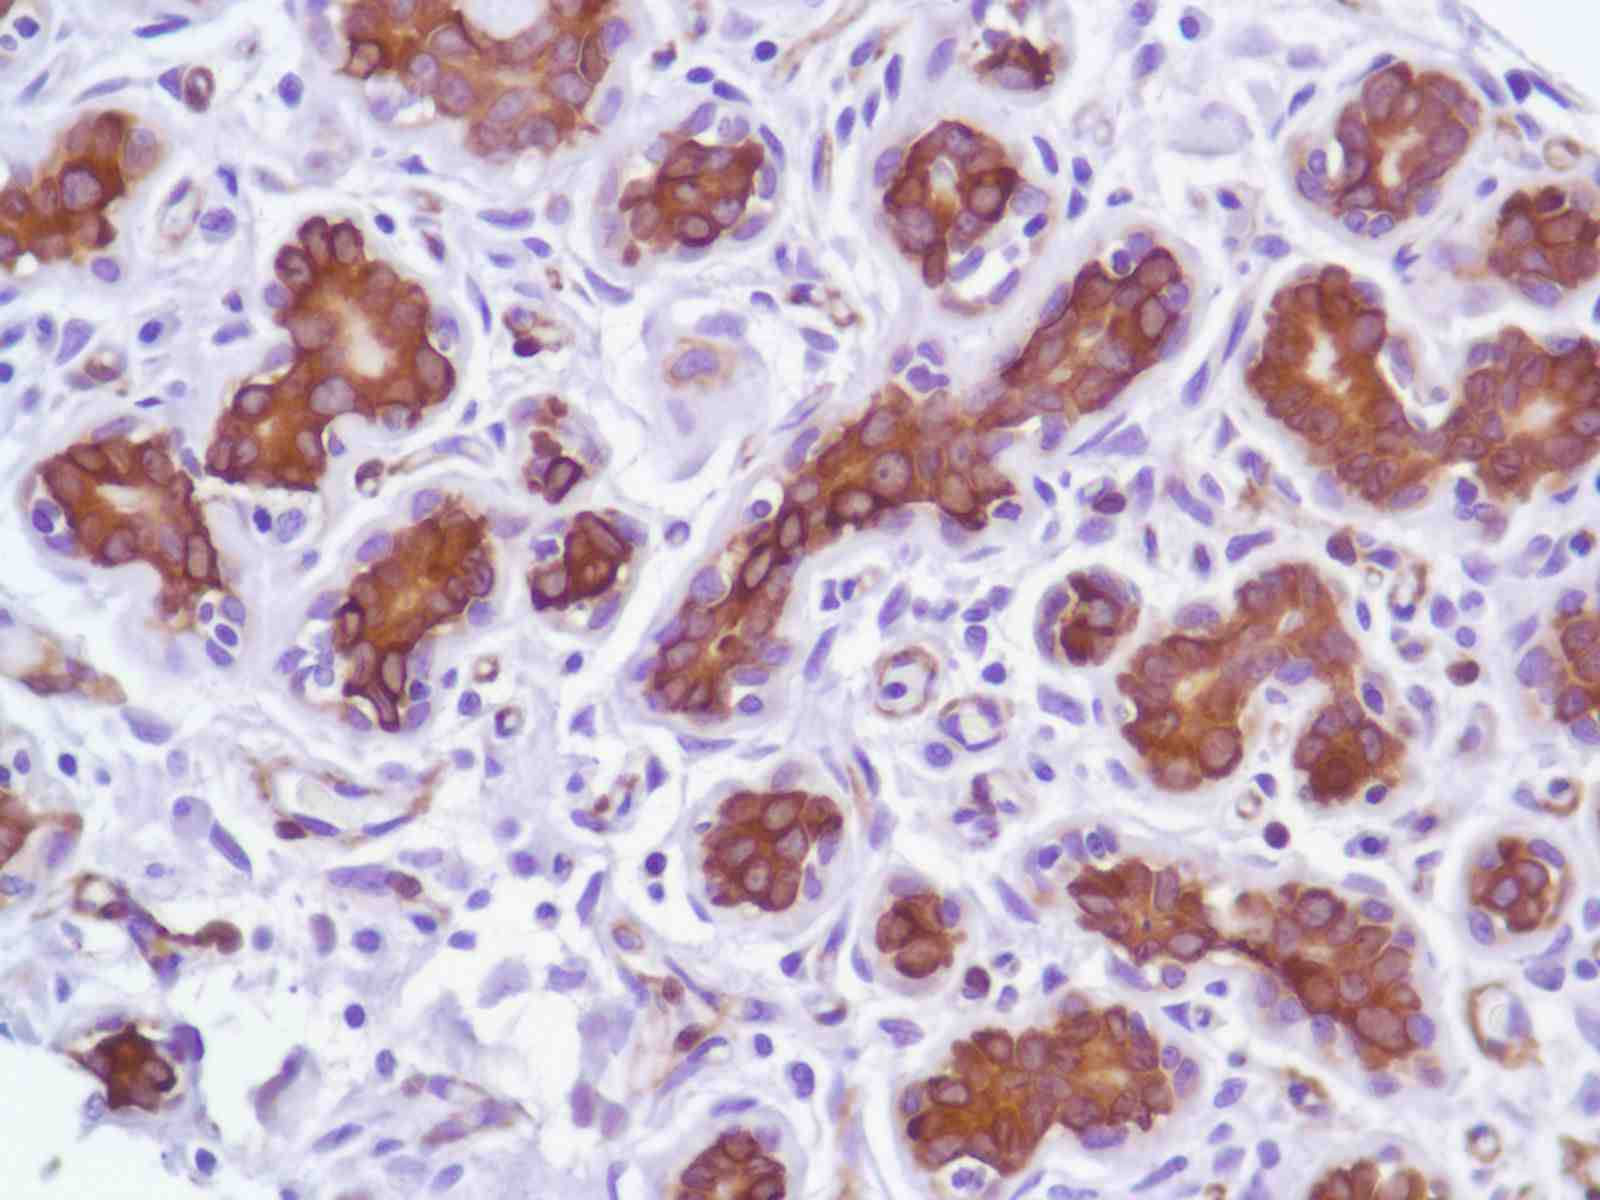 Human Breast stained with anti-Tau antibody